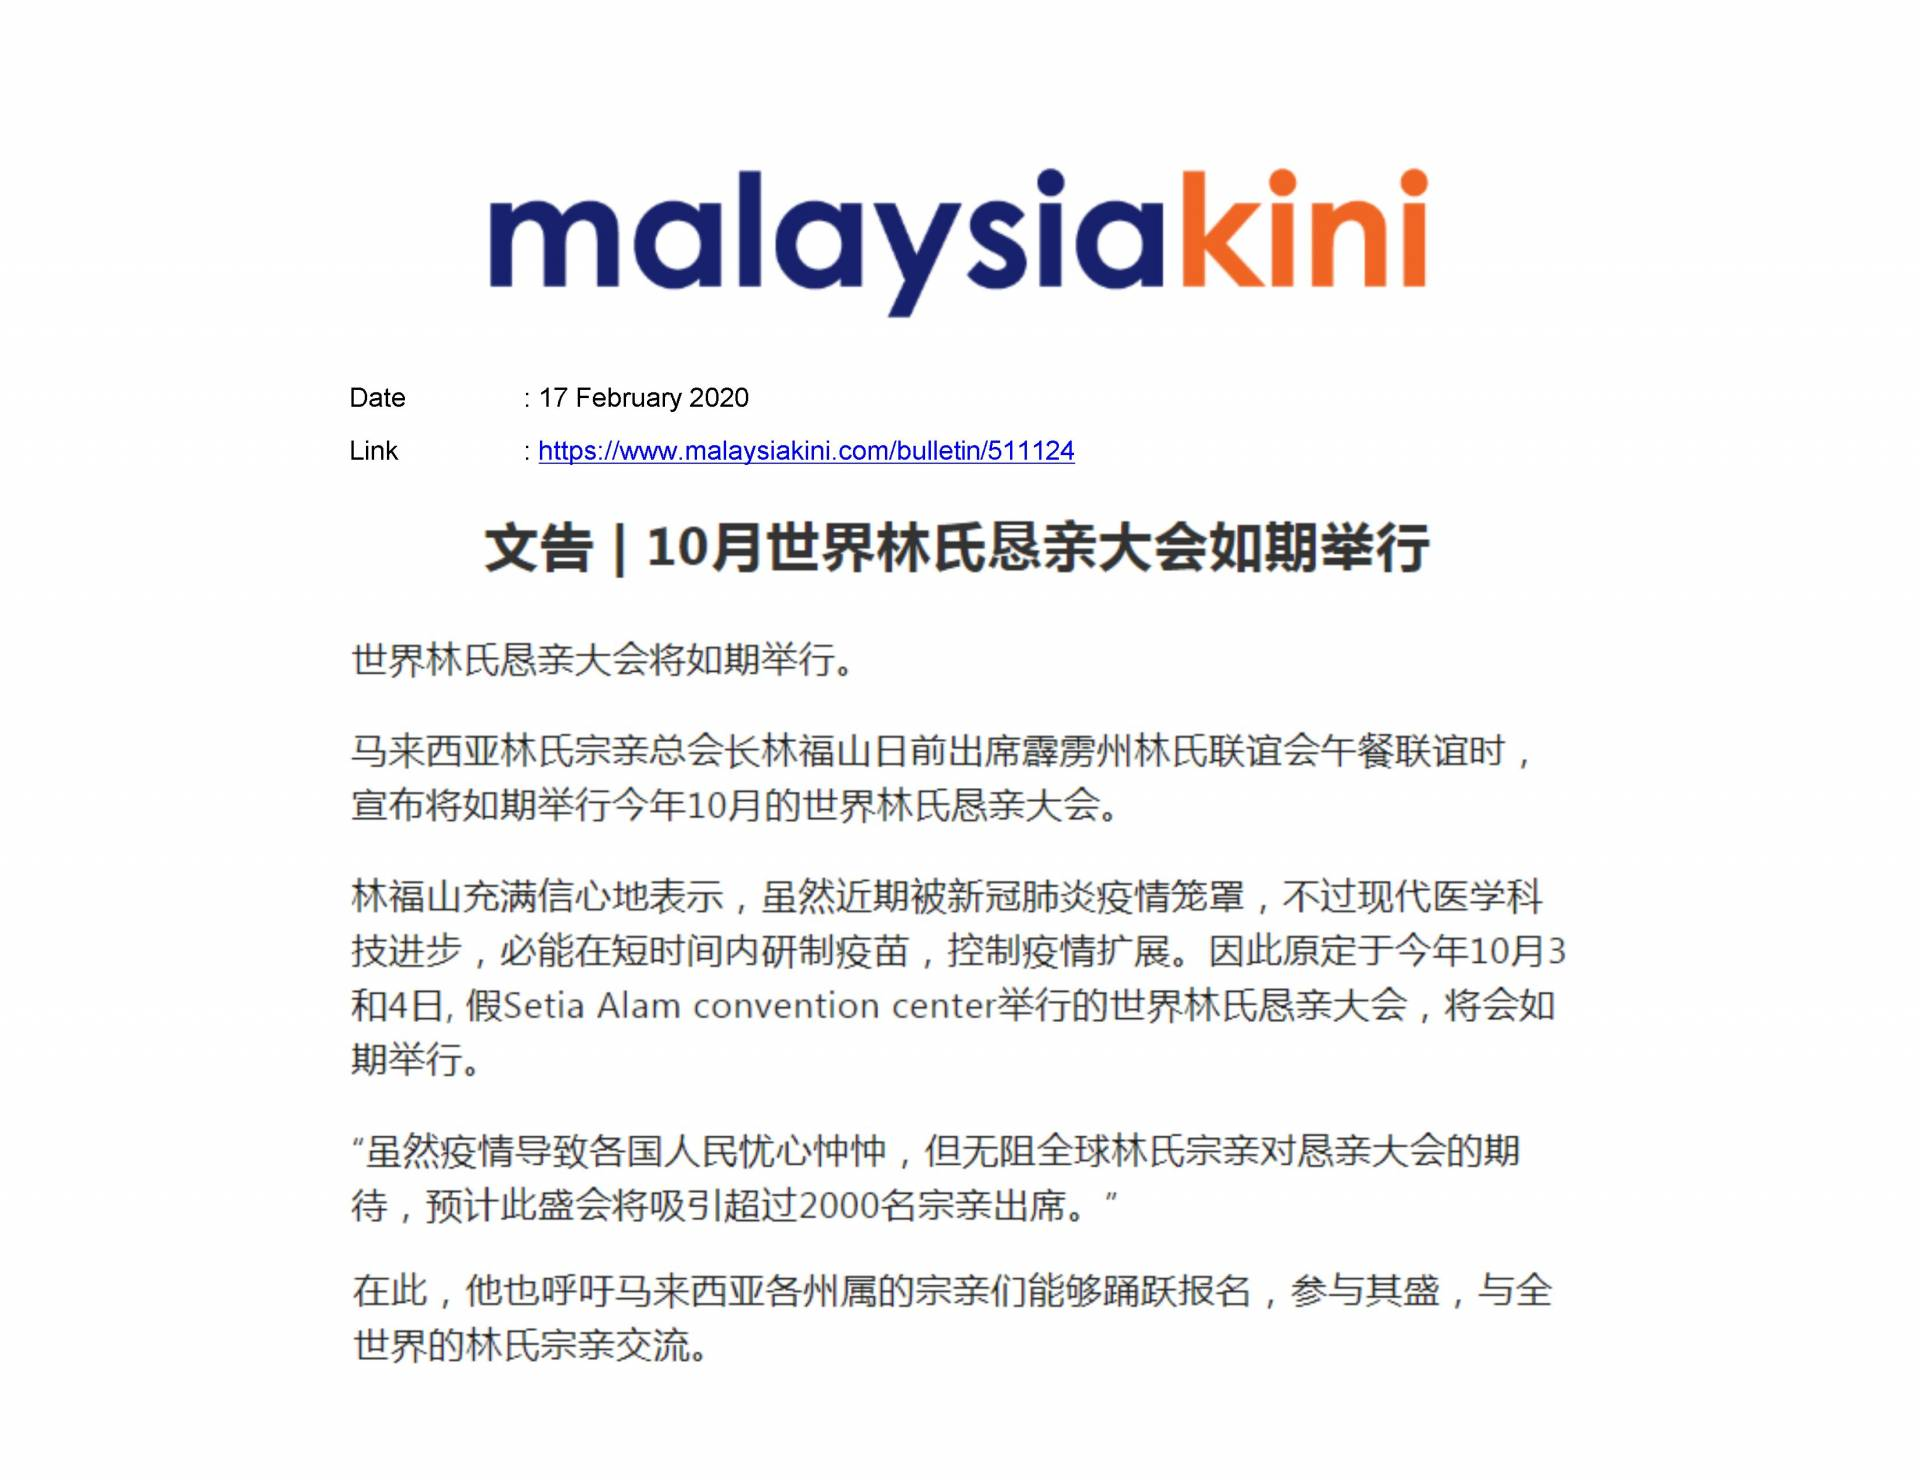 2020.02.17 Malaysiakini - October World Lim's Association meeting goes on as scheduled